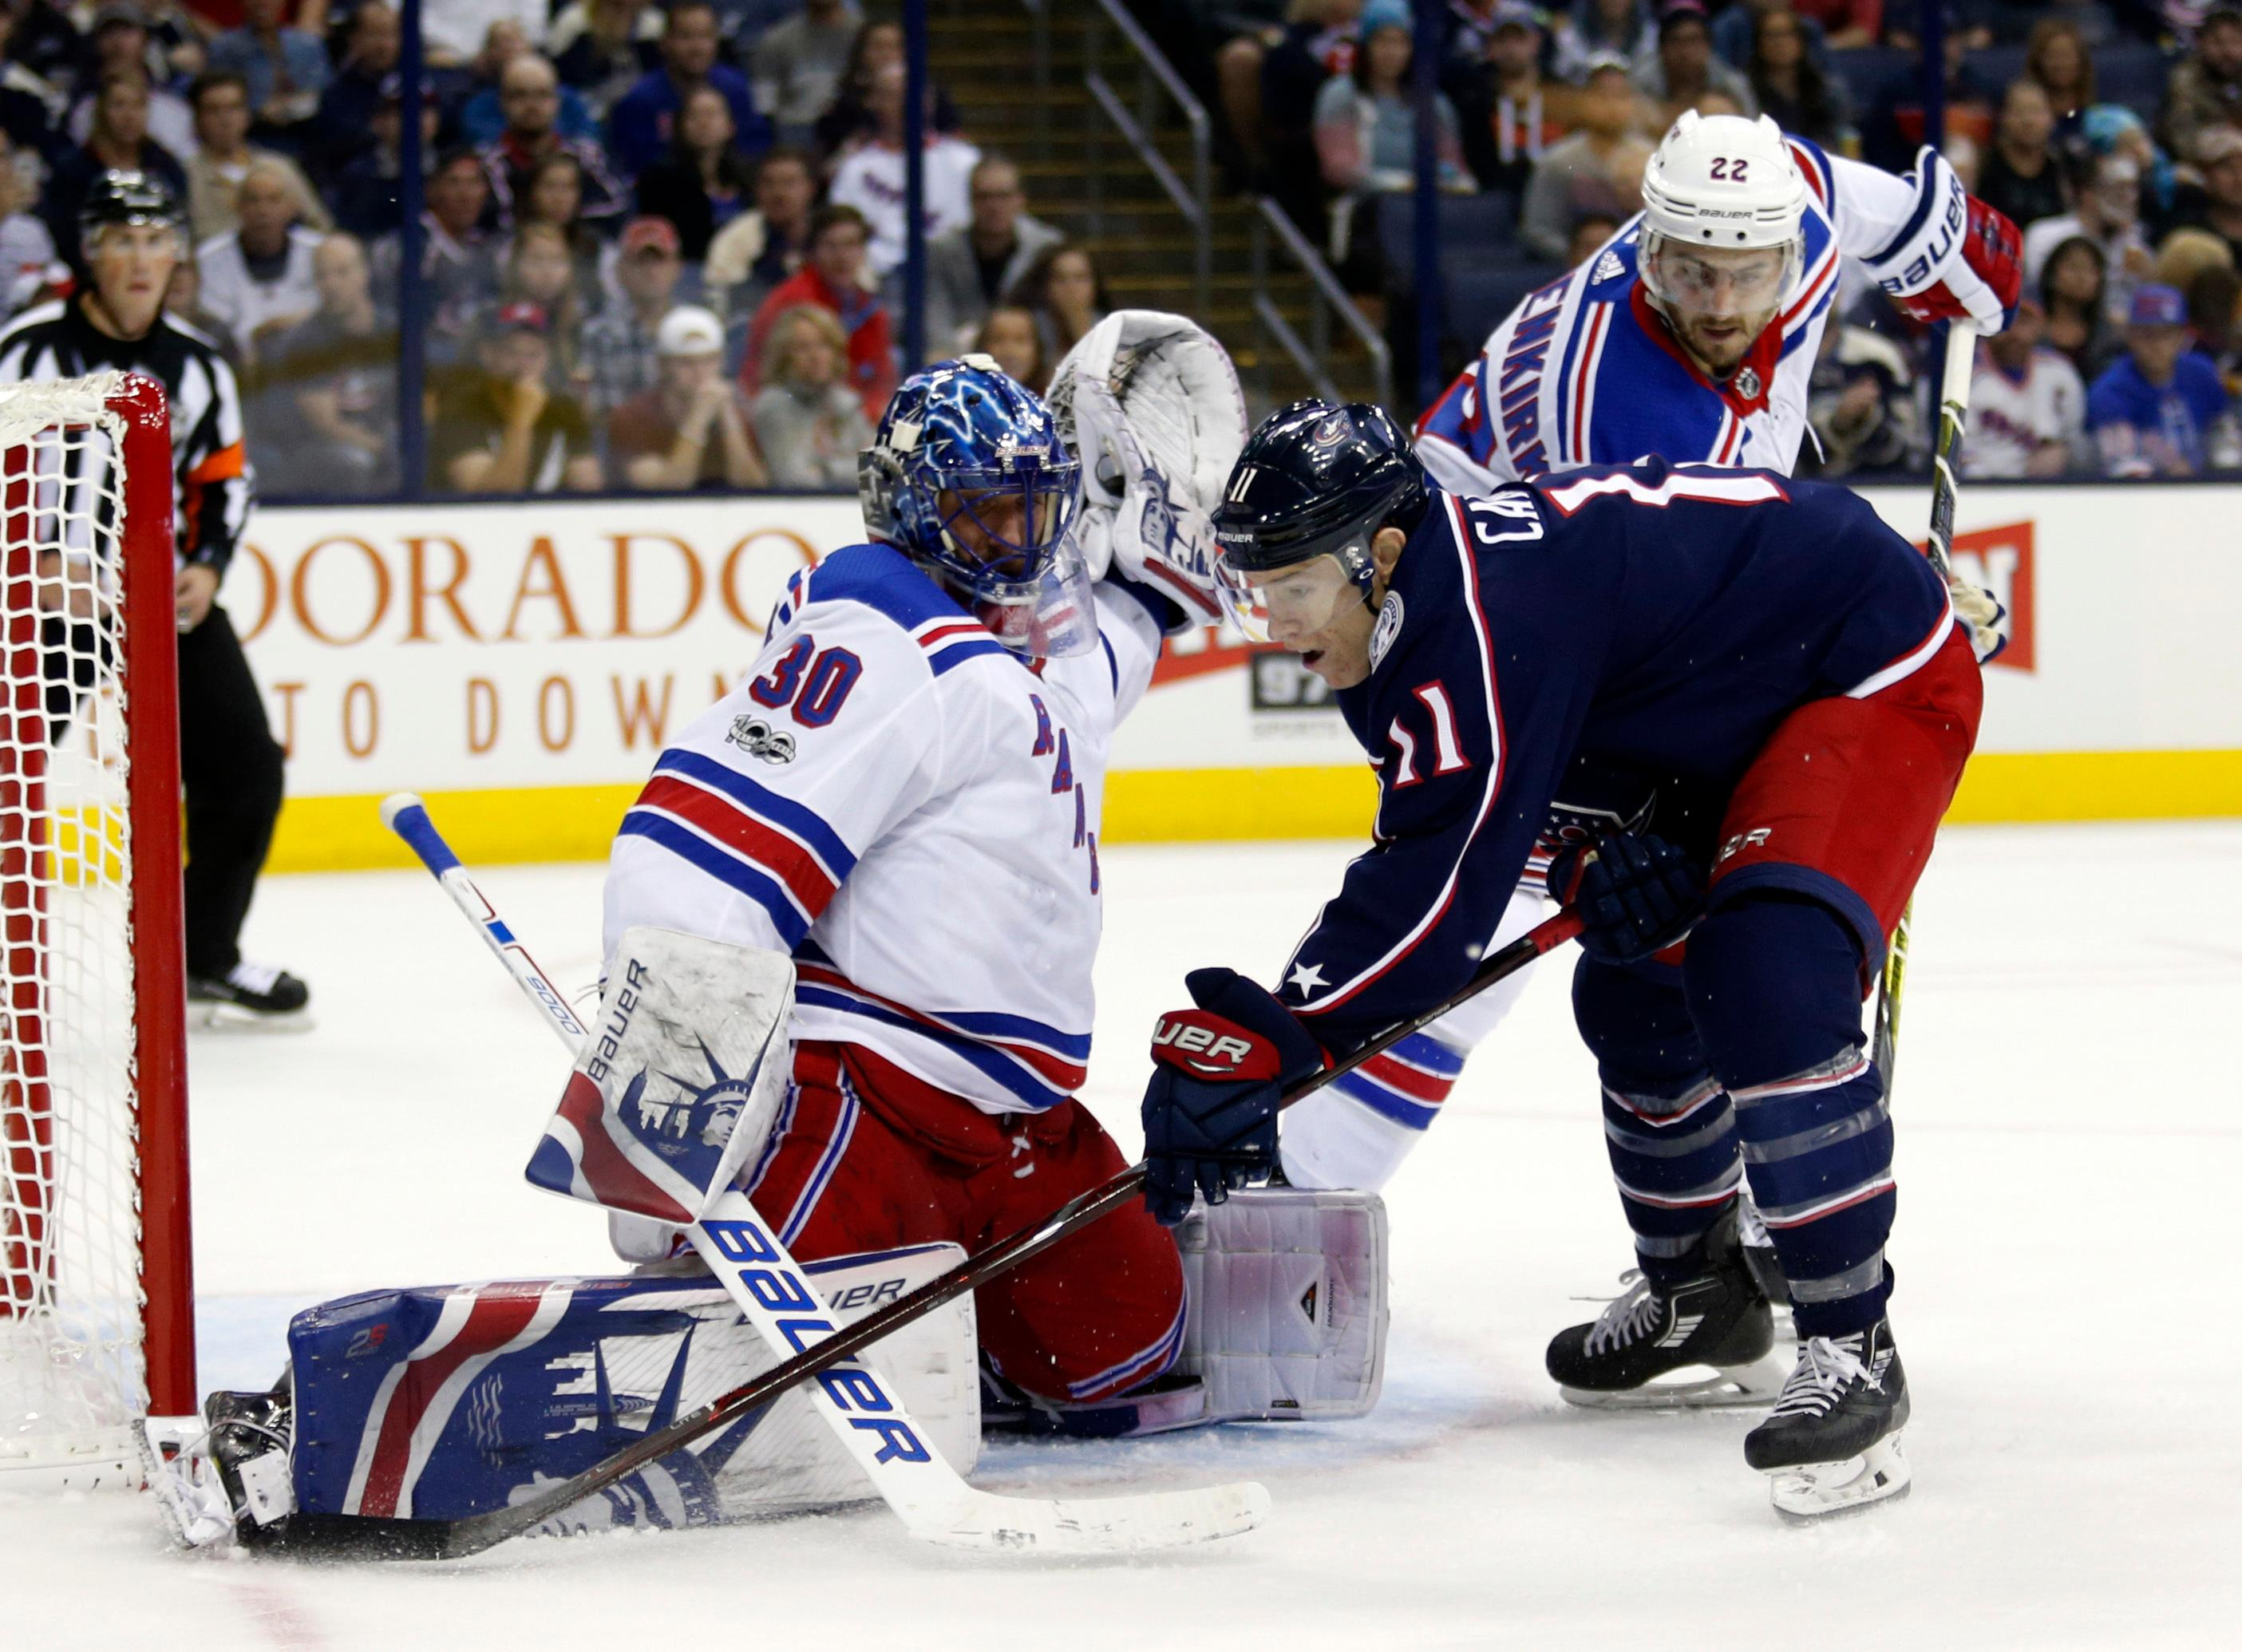 New York Rangers goalie Henrik Lundqvist, left, of Sweden, stops a shot by Columbus Blue Jackets forward Matt Calvert as Rangers defenseman Kevin Shattenkirk defends during the second period of an NHL hockey game in Columbus, Ohio, Friday, Oct. 13, 2017. (AP Photo/Paul Vernon)